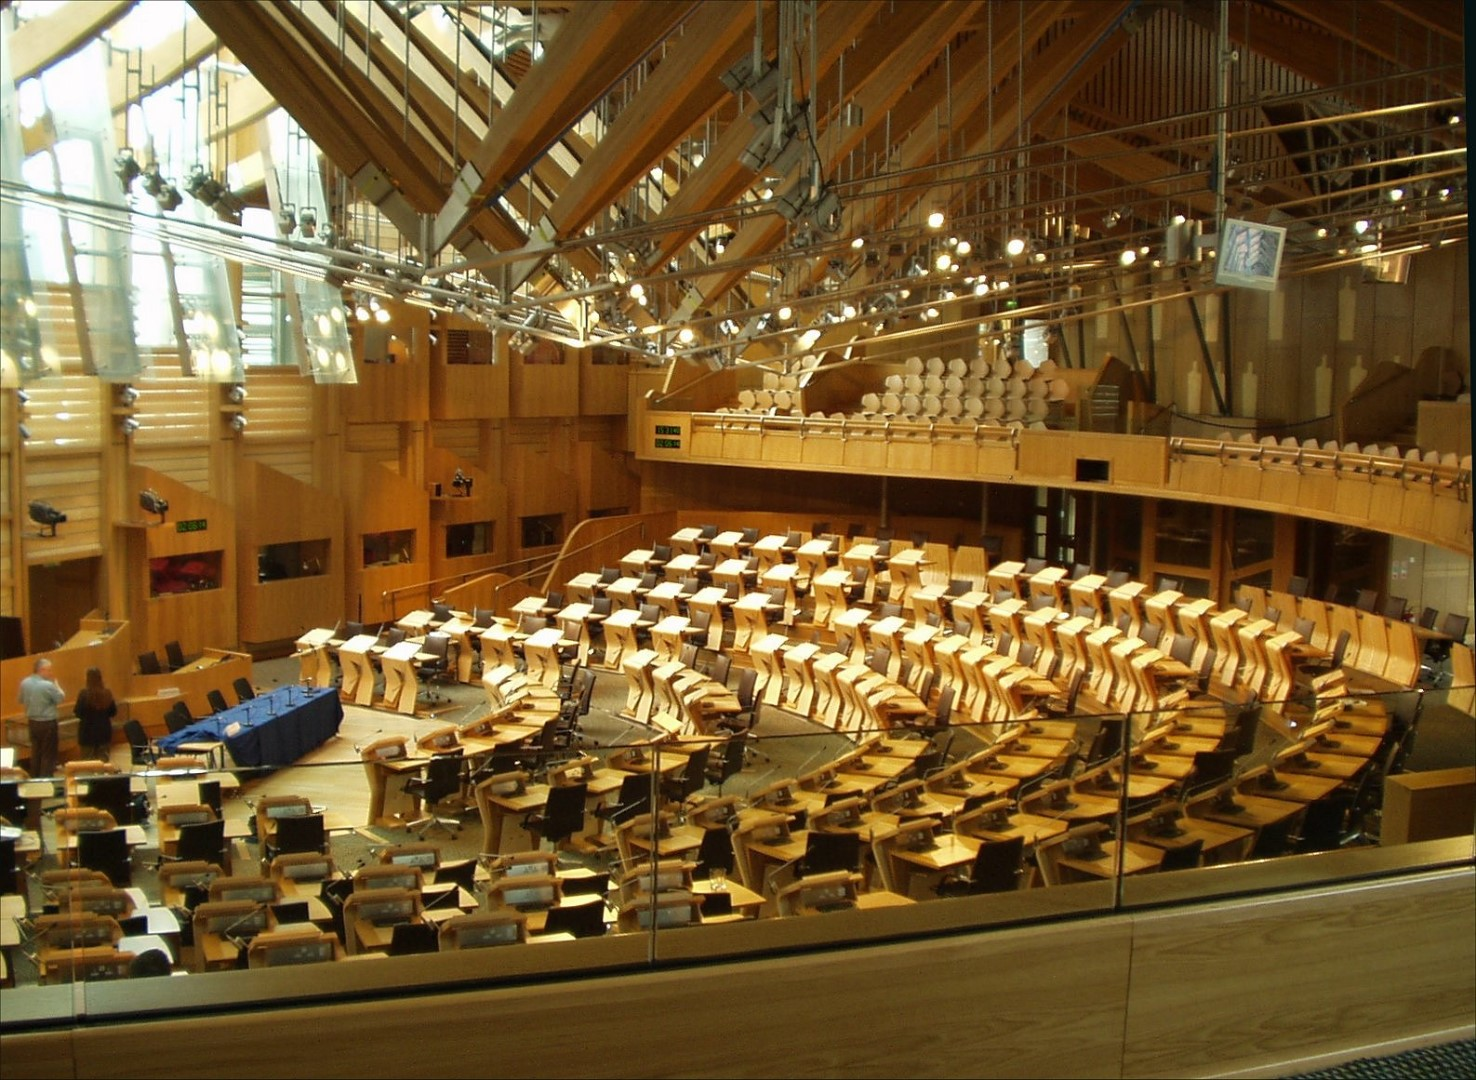 Debating_chamber_Scottish_Parliament_31-05-2006.jpg